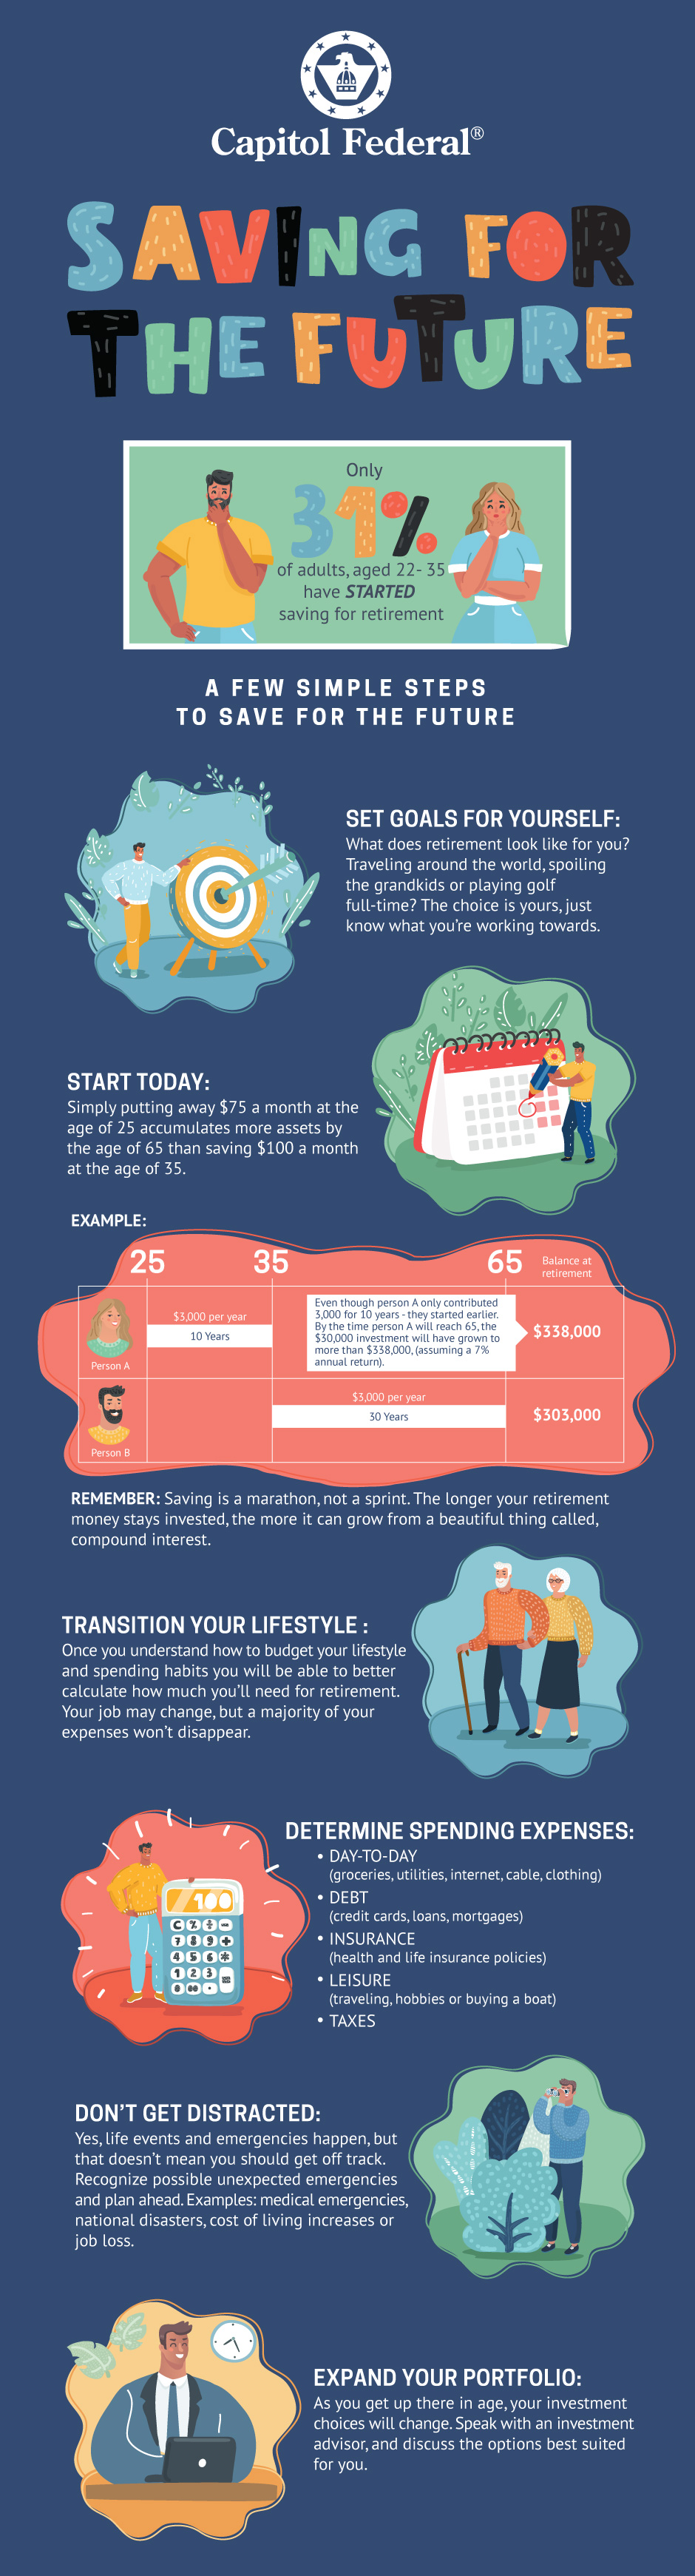 Saving for Retirement Infographic.